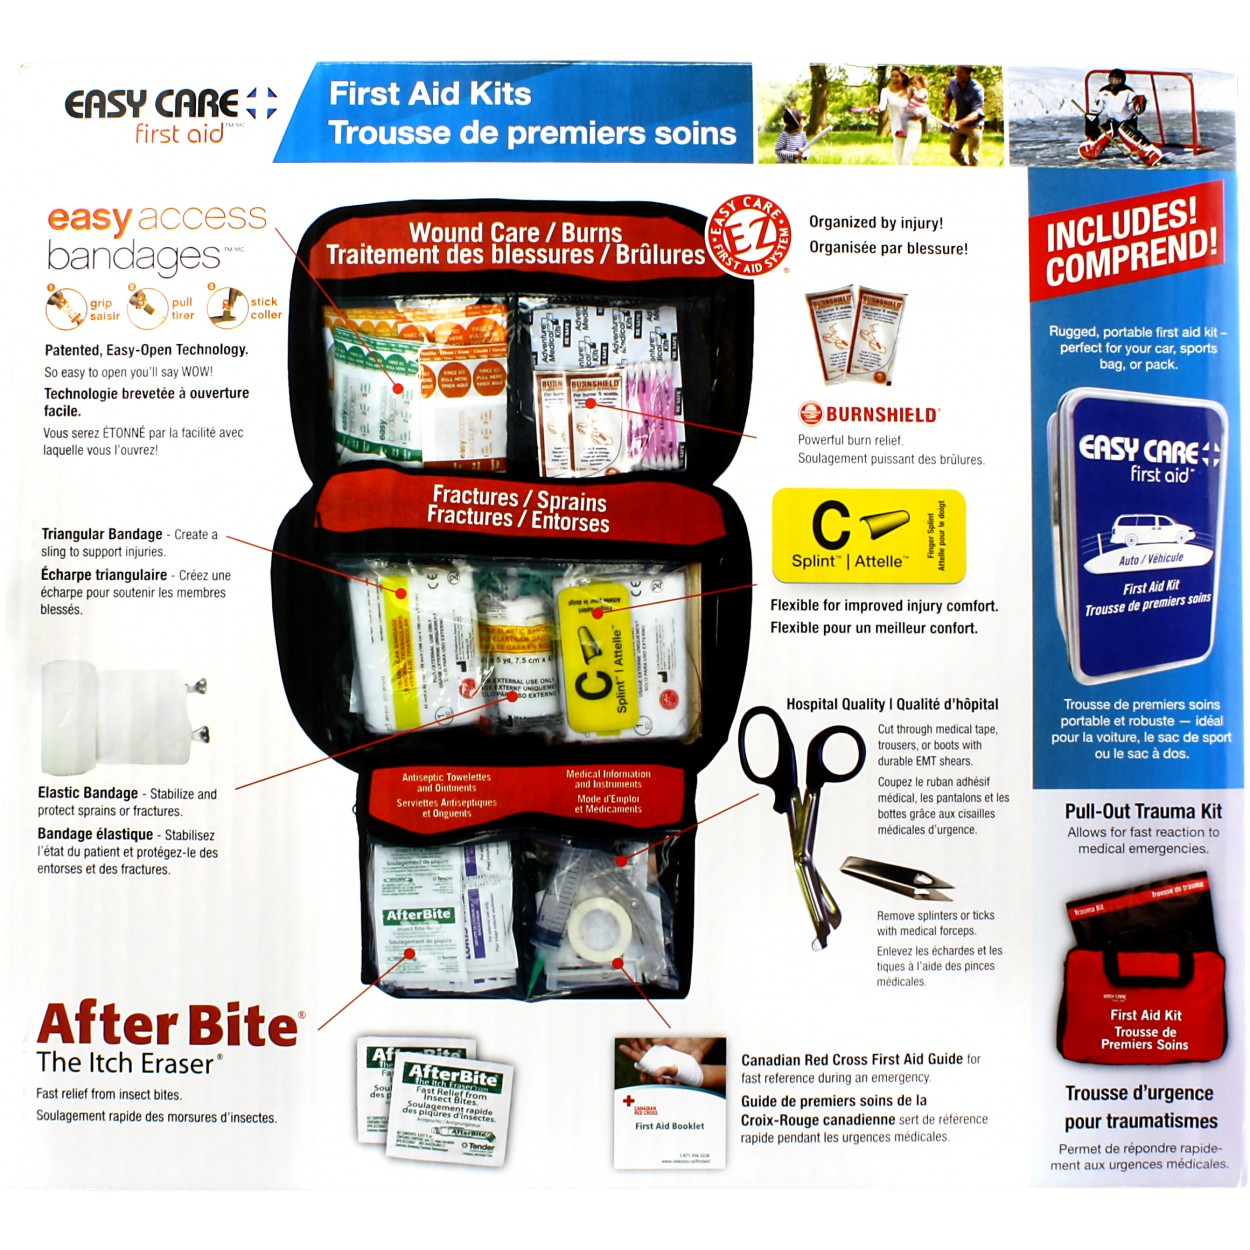 First Aid Kits Easy Care First